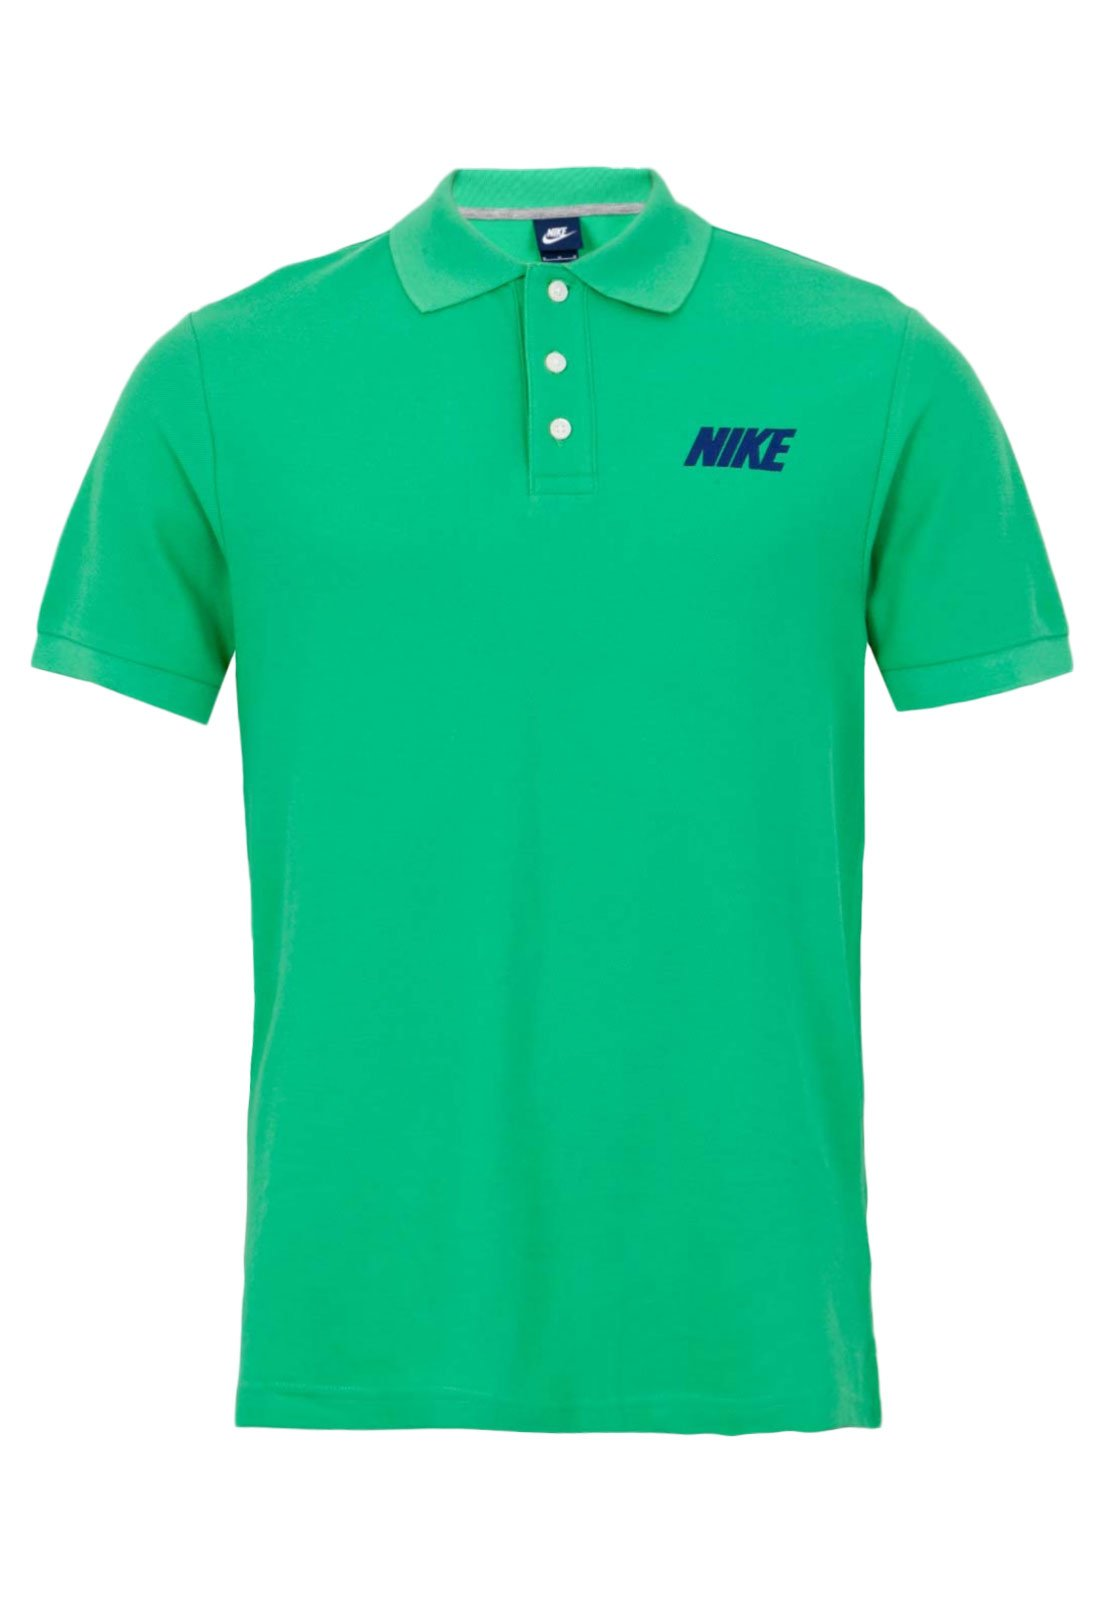 harassment In front of you Secondly  Camisa Polo Nike Sportswear Matchup Verde - Compre Agora | Dafiti Brasil